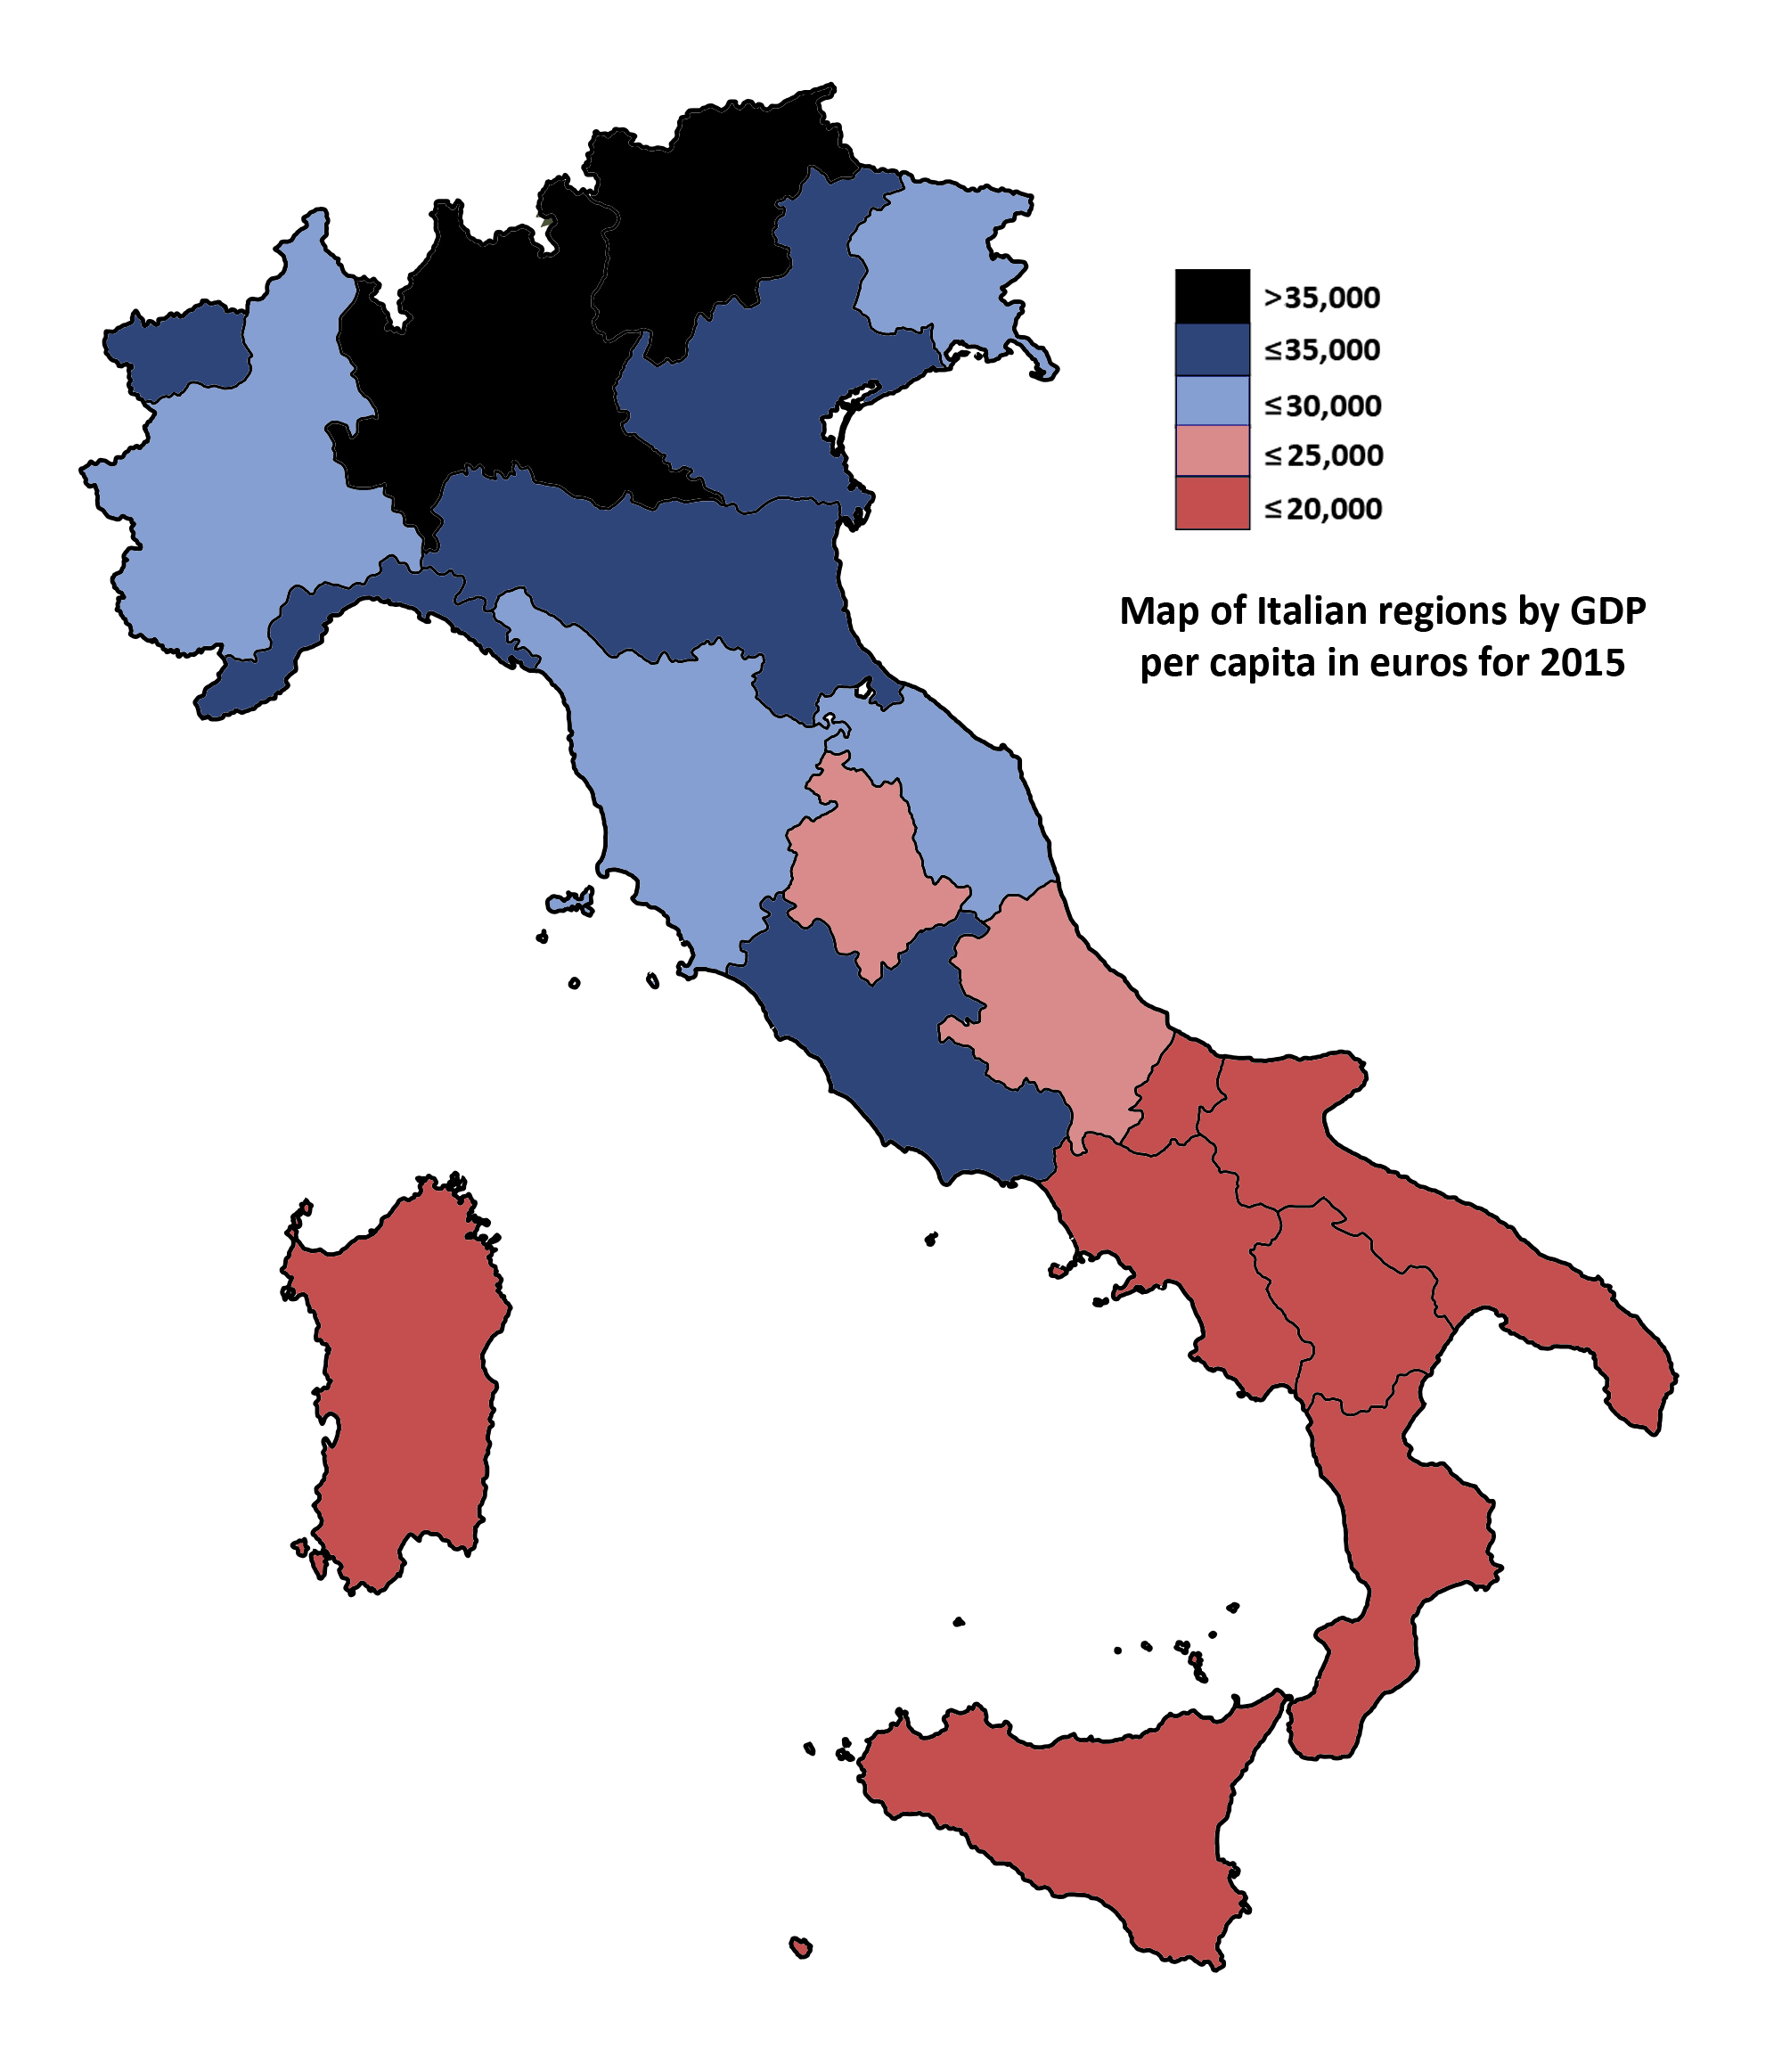 File Map Of Italian Regions By Gdp Per Capita In Euros 2015